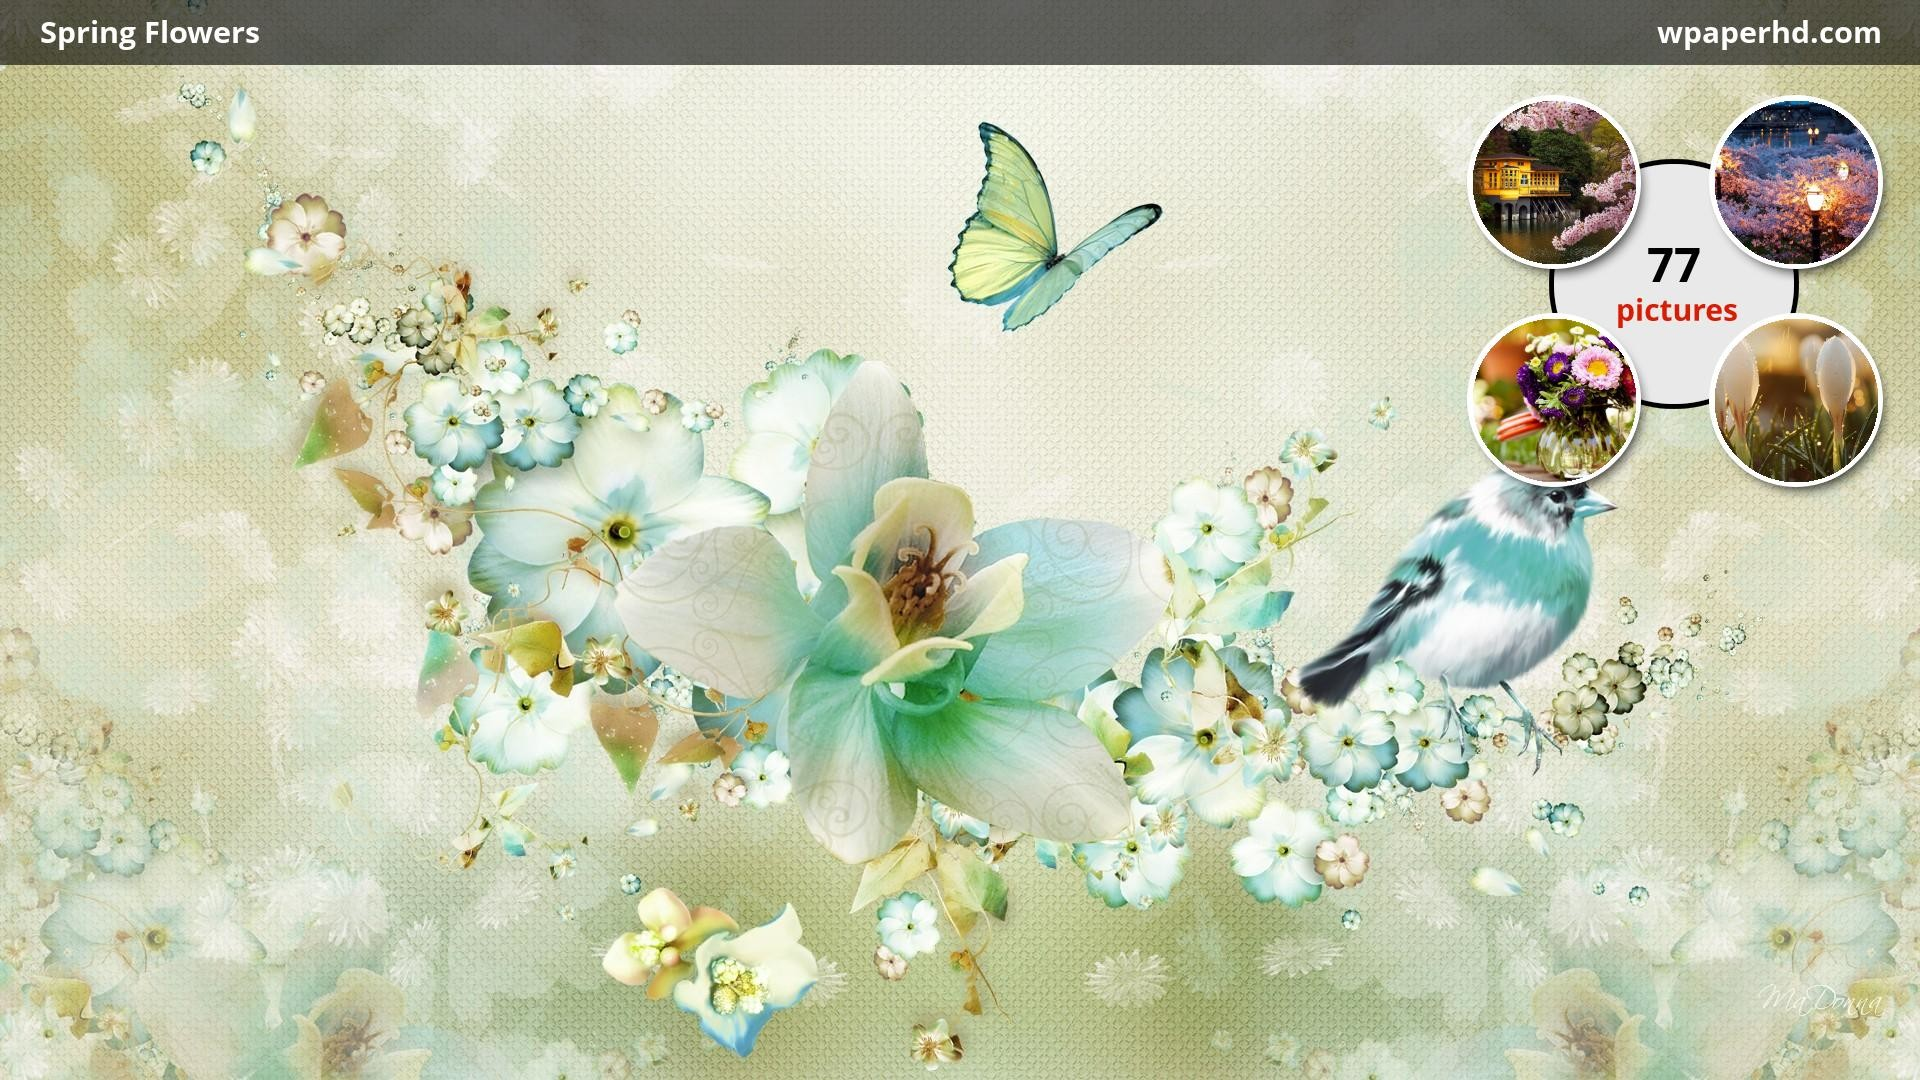 1920x1080 You are on page with Spring Flowers wallpaper, where you can download this  picture in Original size and ...